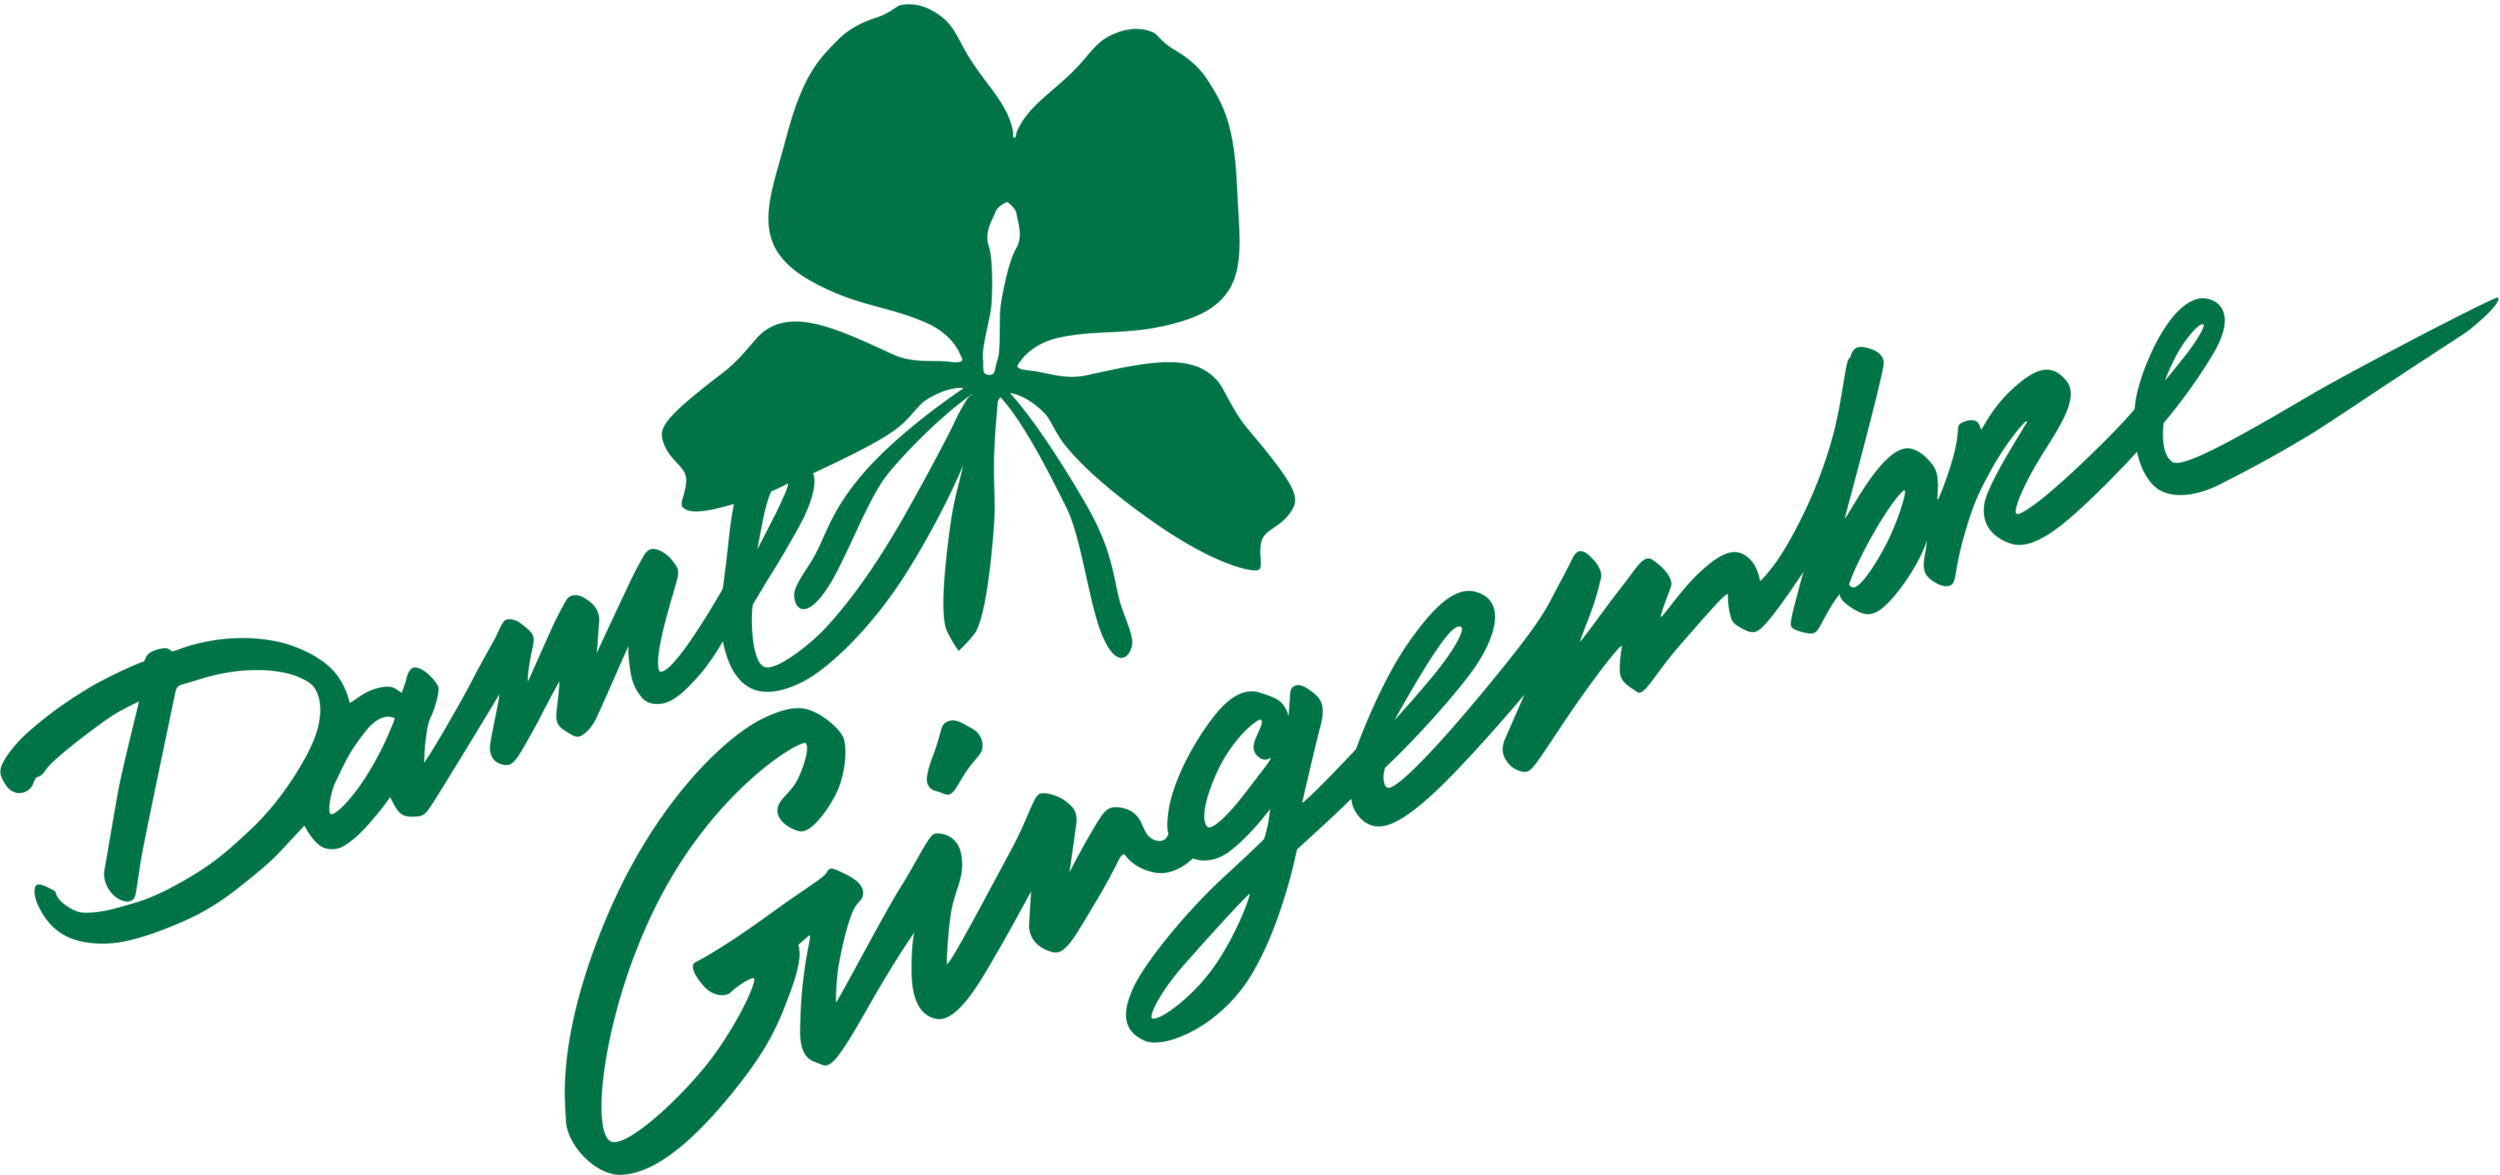 LOGO DAME GINGEMBRE 2018 PNG.png